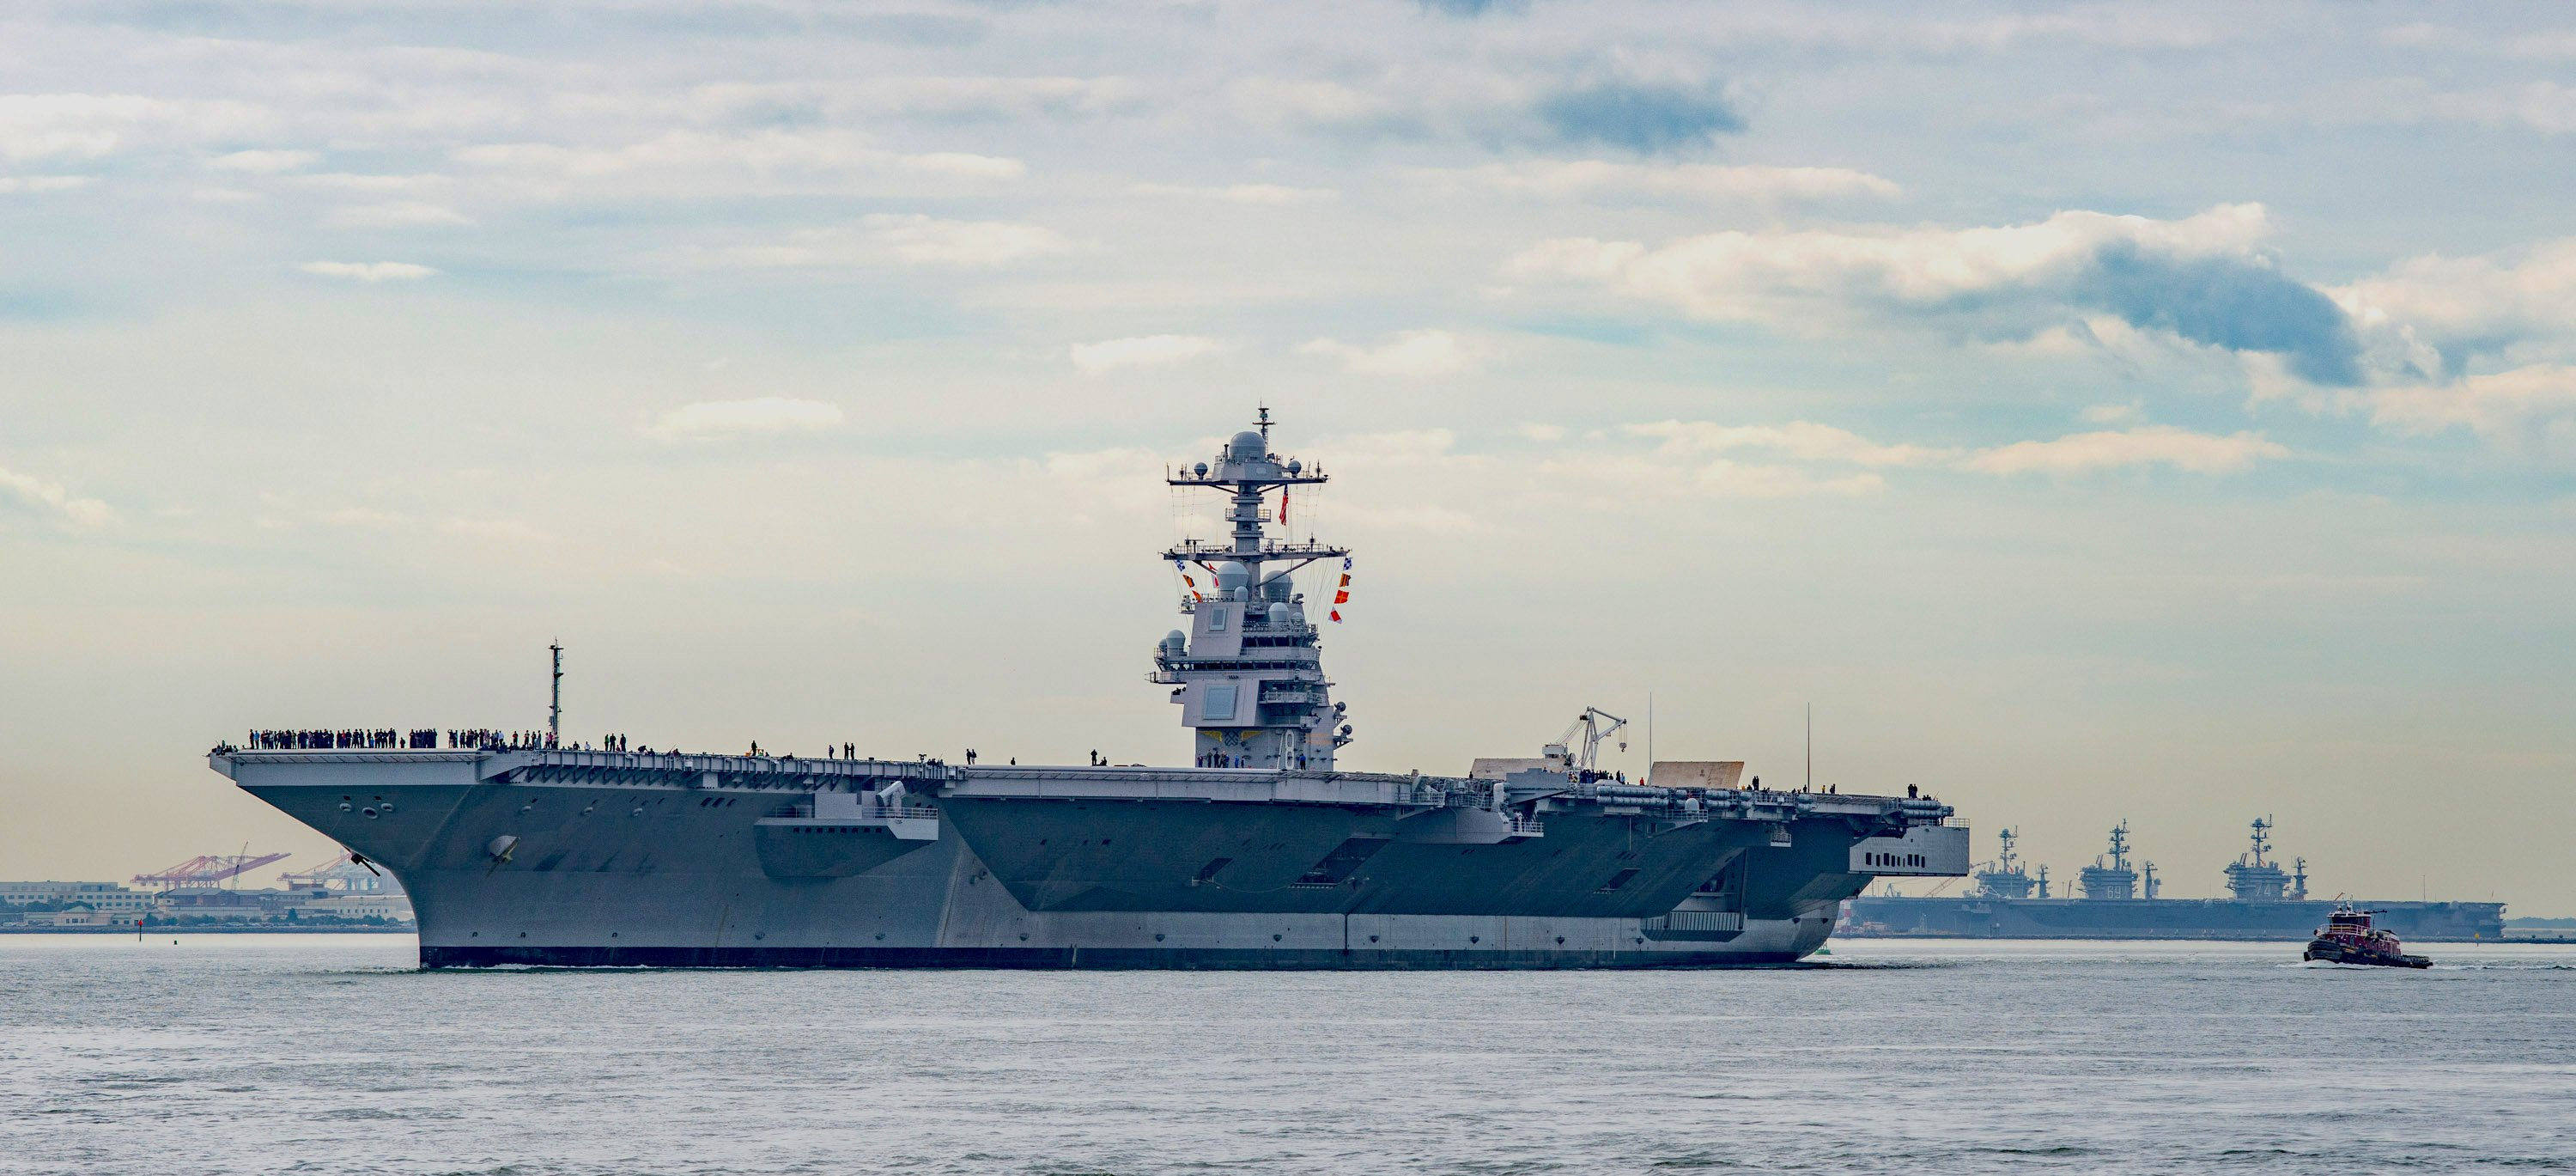 UPDATED: USS Gerald Ford Starts Sea Trials After More Than